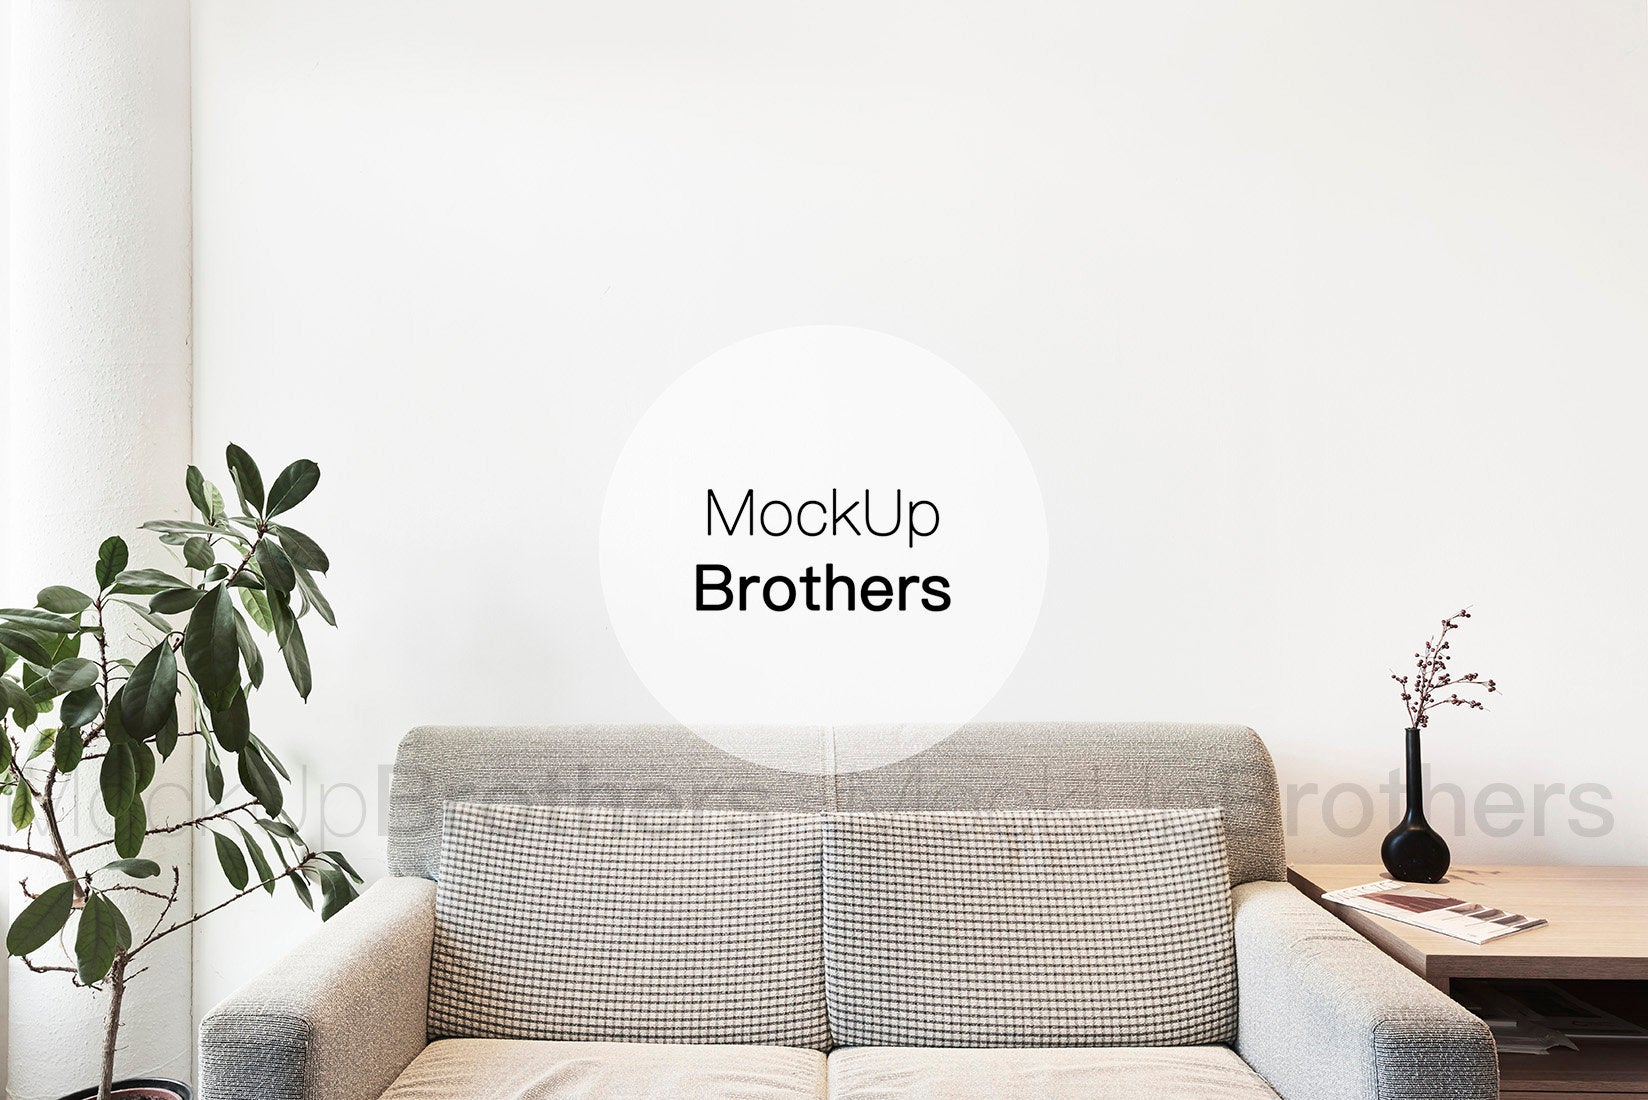 Interior mockup with sofa and blank wall by Mockup Brothers